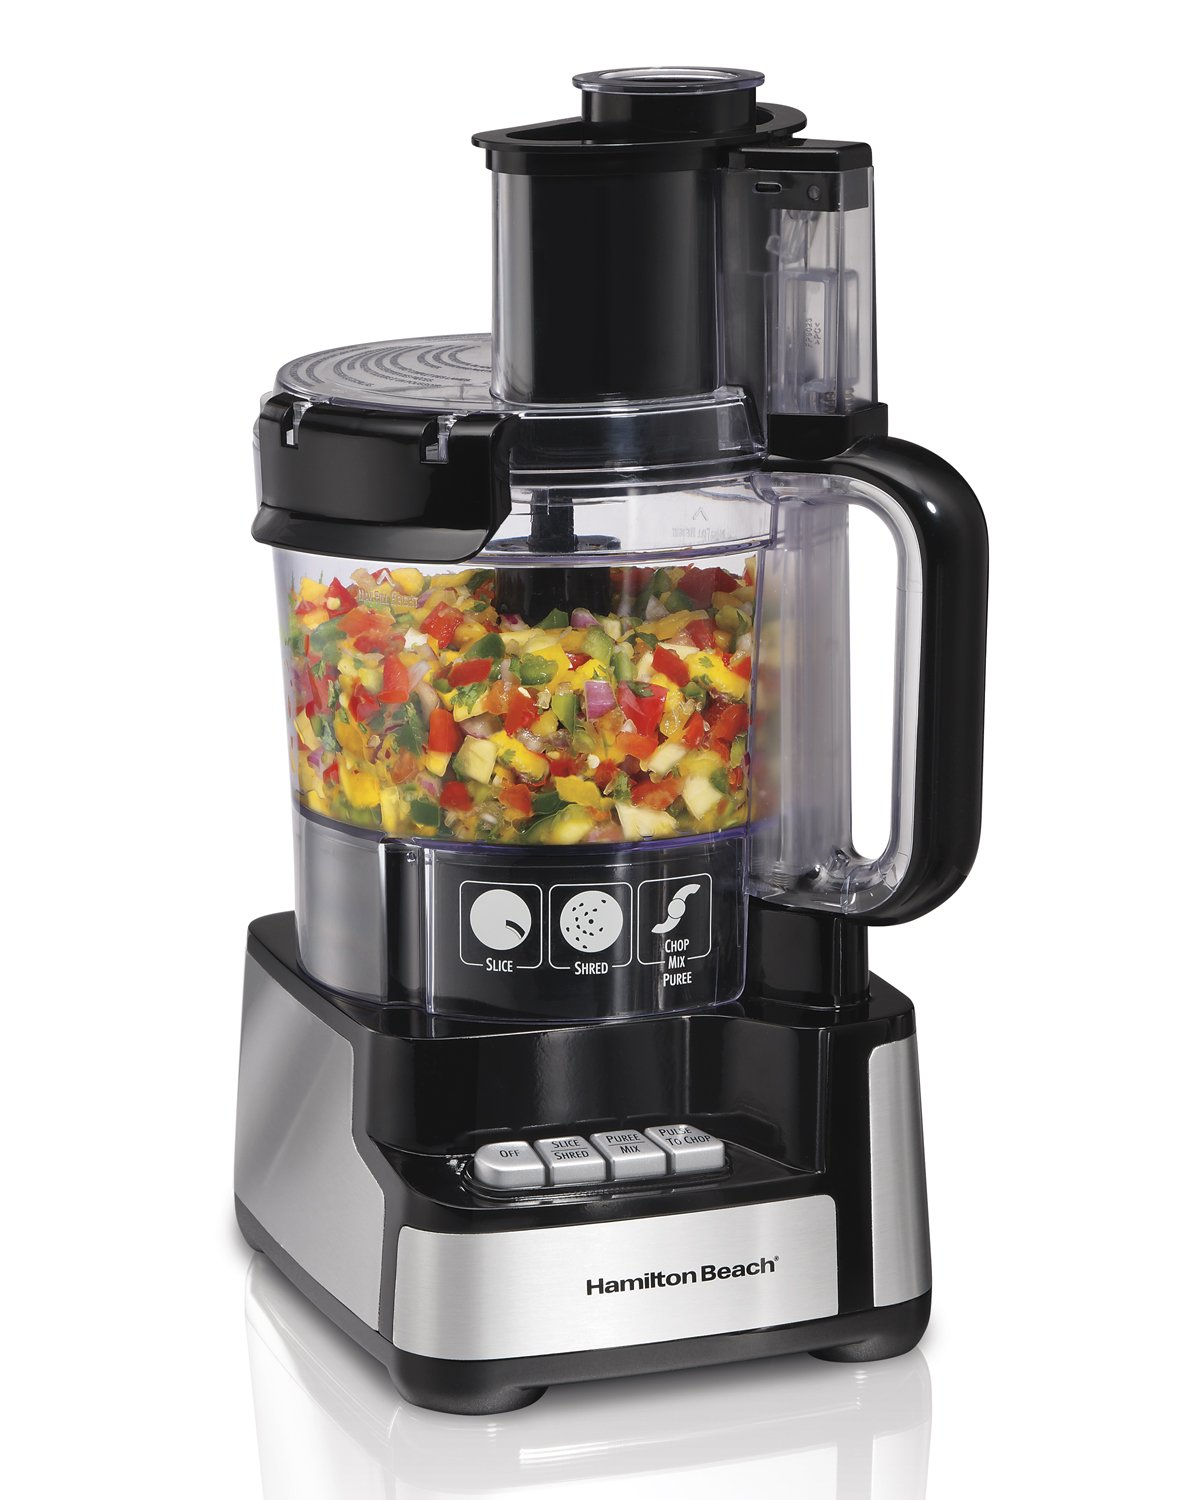 Best Food Processor 2020: The 5 Most Top-Rated And Best Selling Products 1